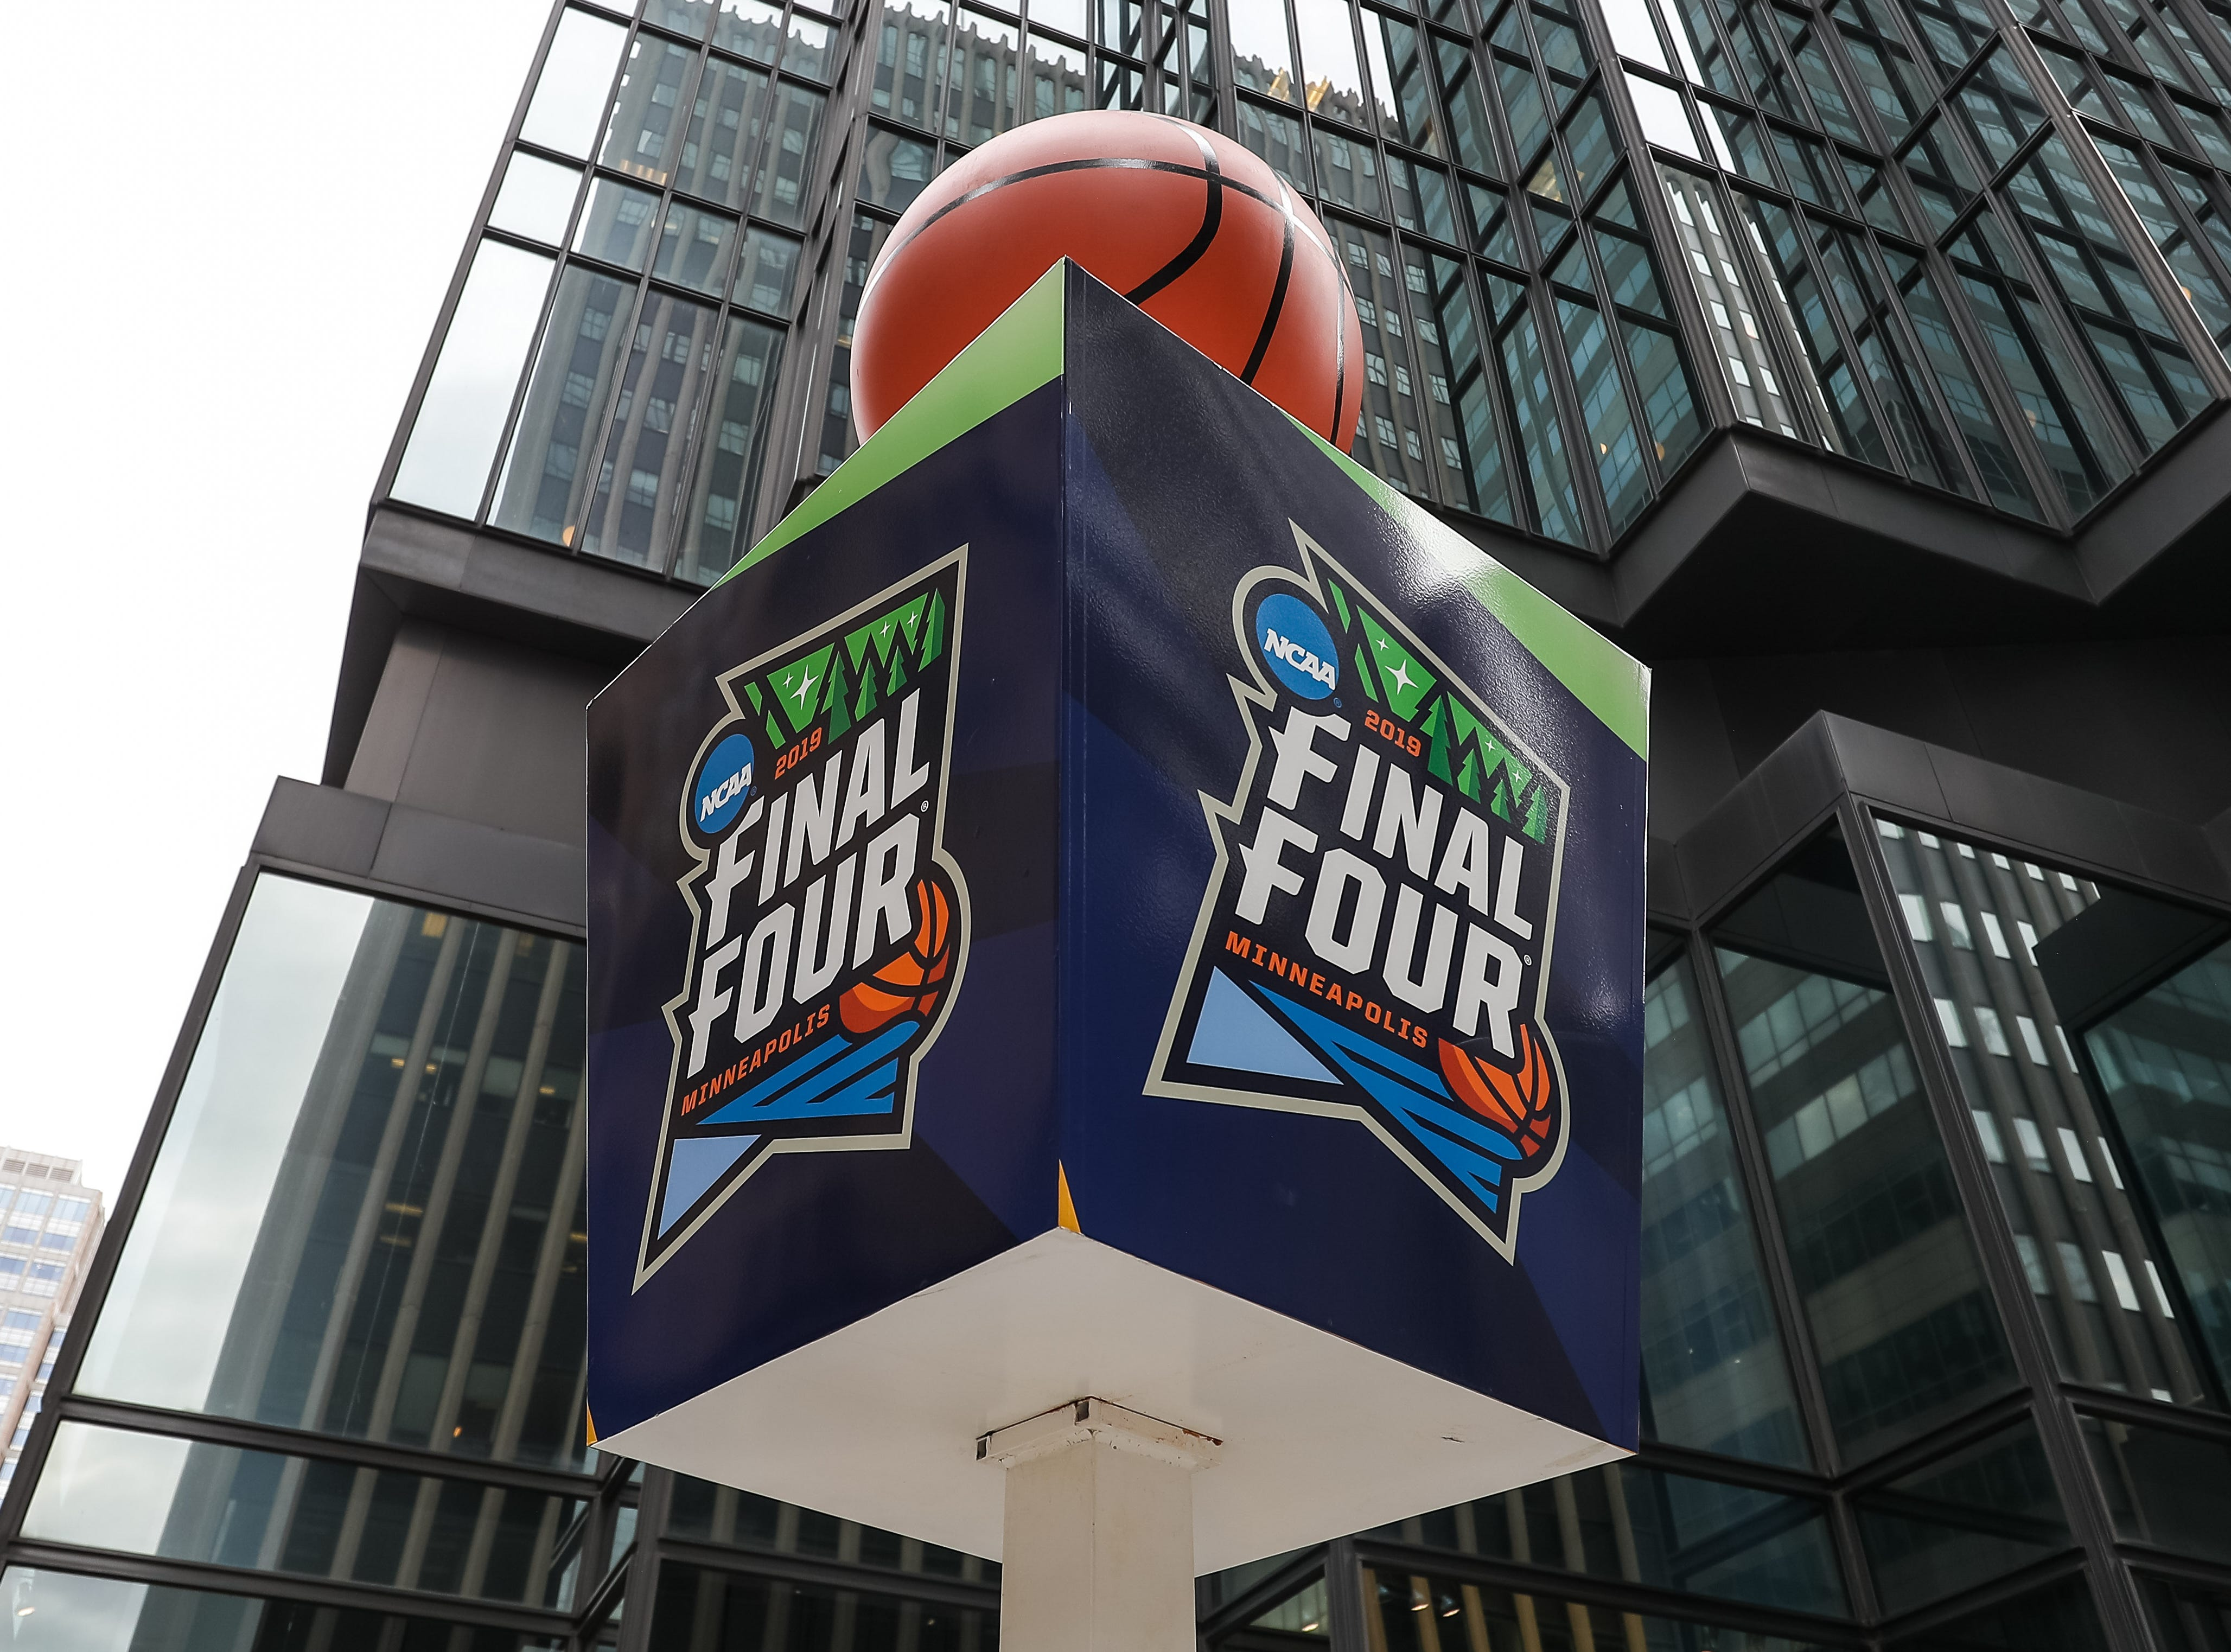 Apr 8, 2019; Minneapolis, MN, USA; A general view of Final Four signage outside before the championship game between the Virginia Cavaliers and Texas Tech Red Raiders. Mandatory Credit: Brace Hemmelgarn-USA TODAY Sports